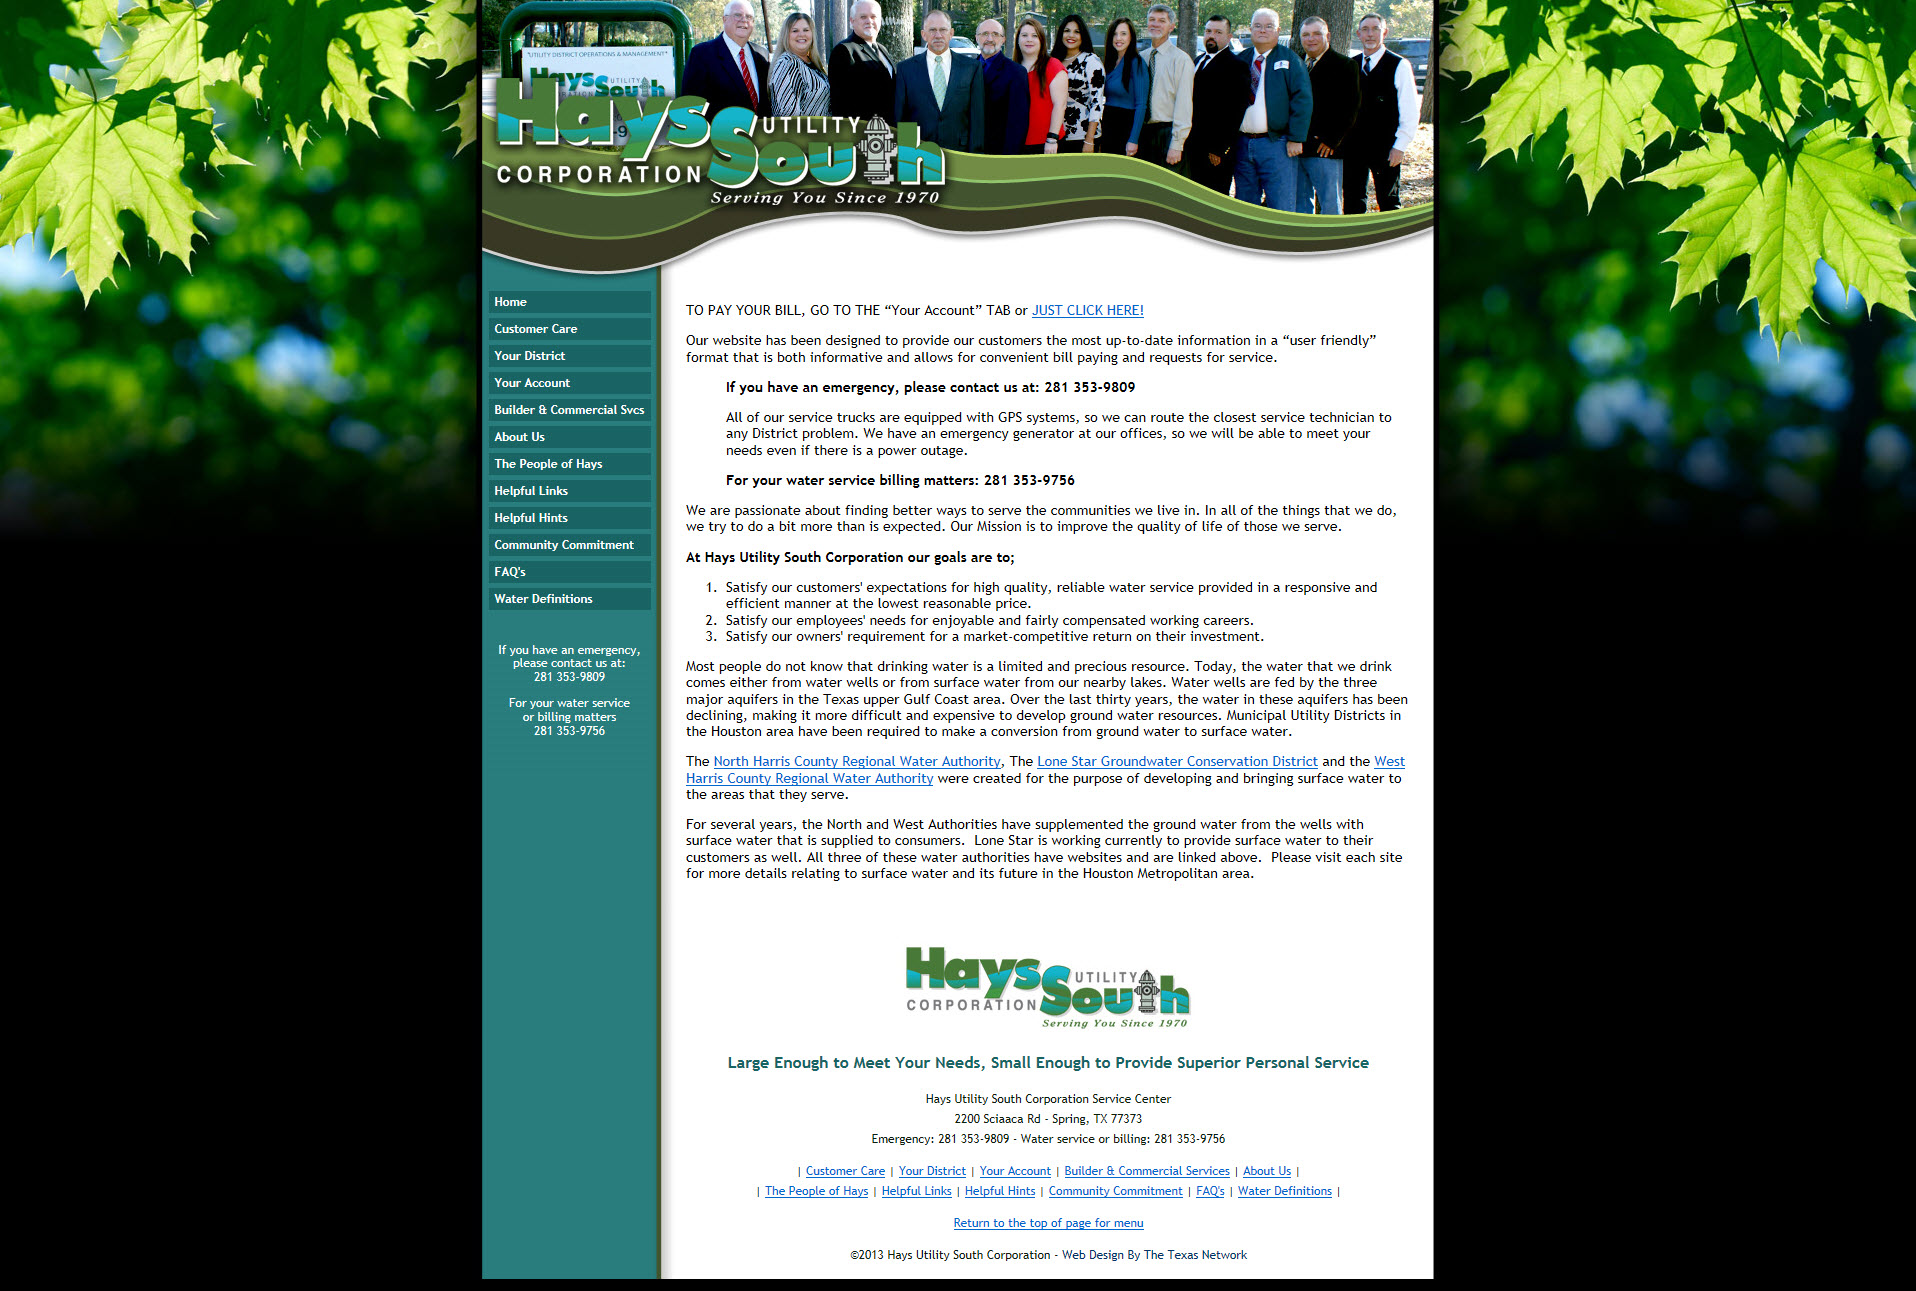 Hays Utility South Corporation